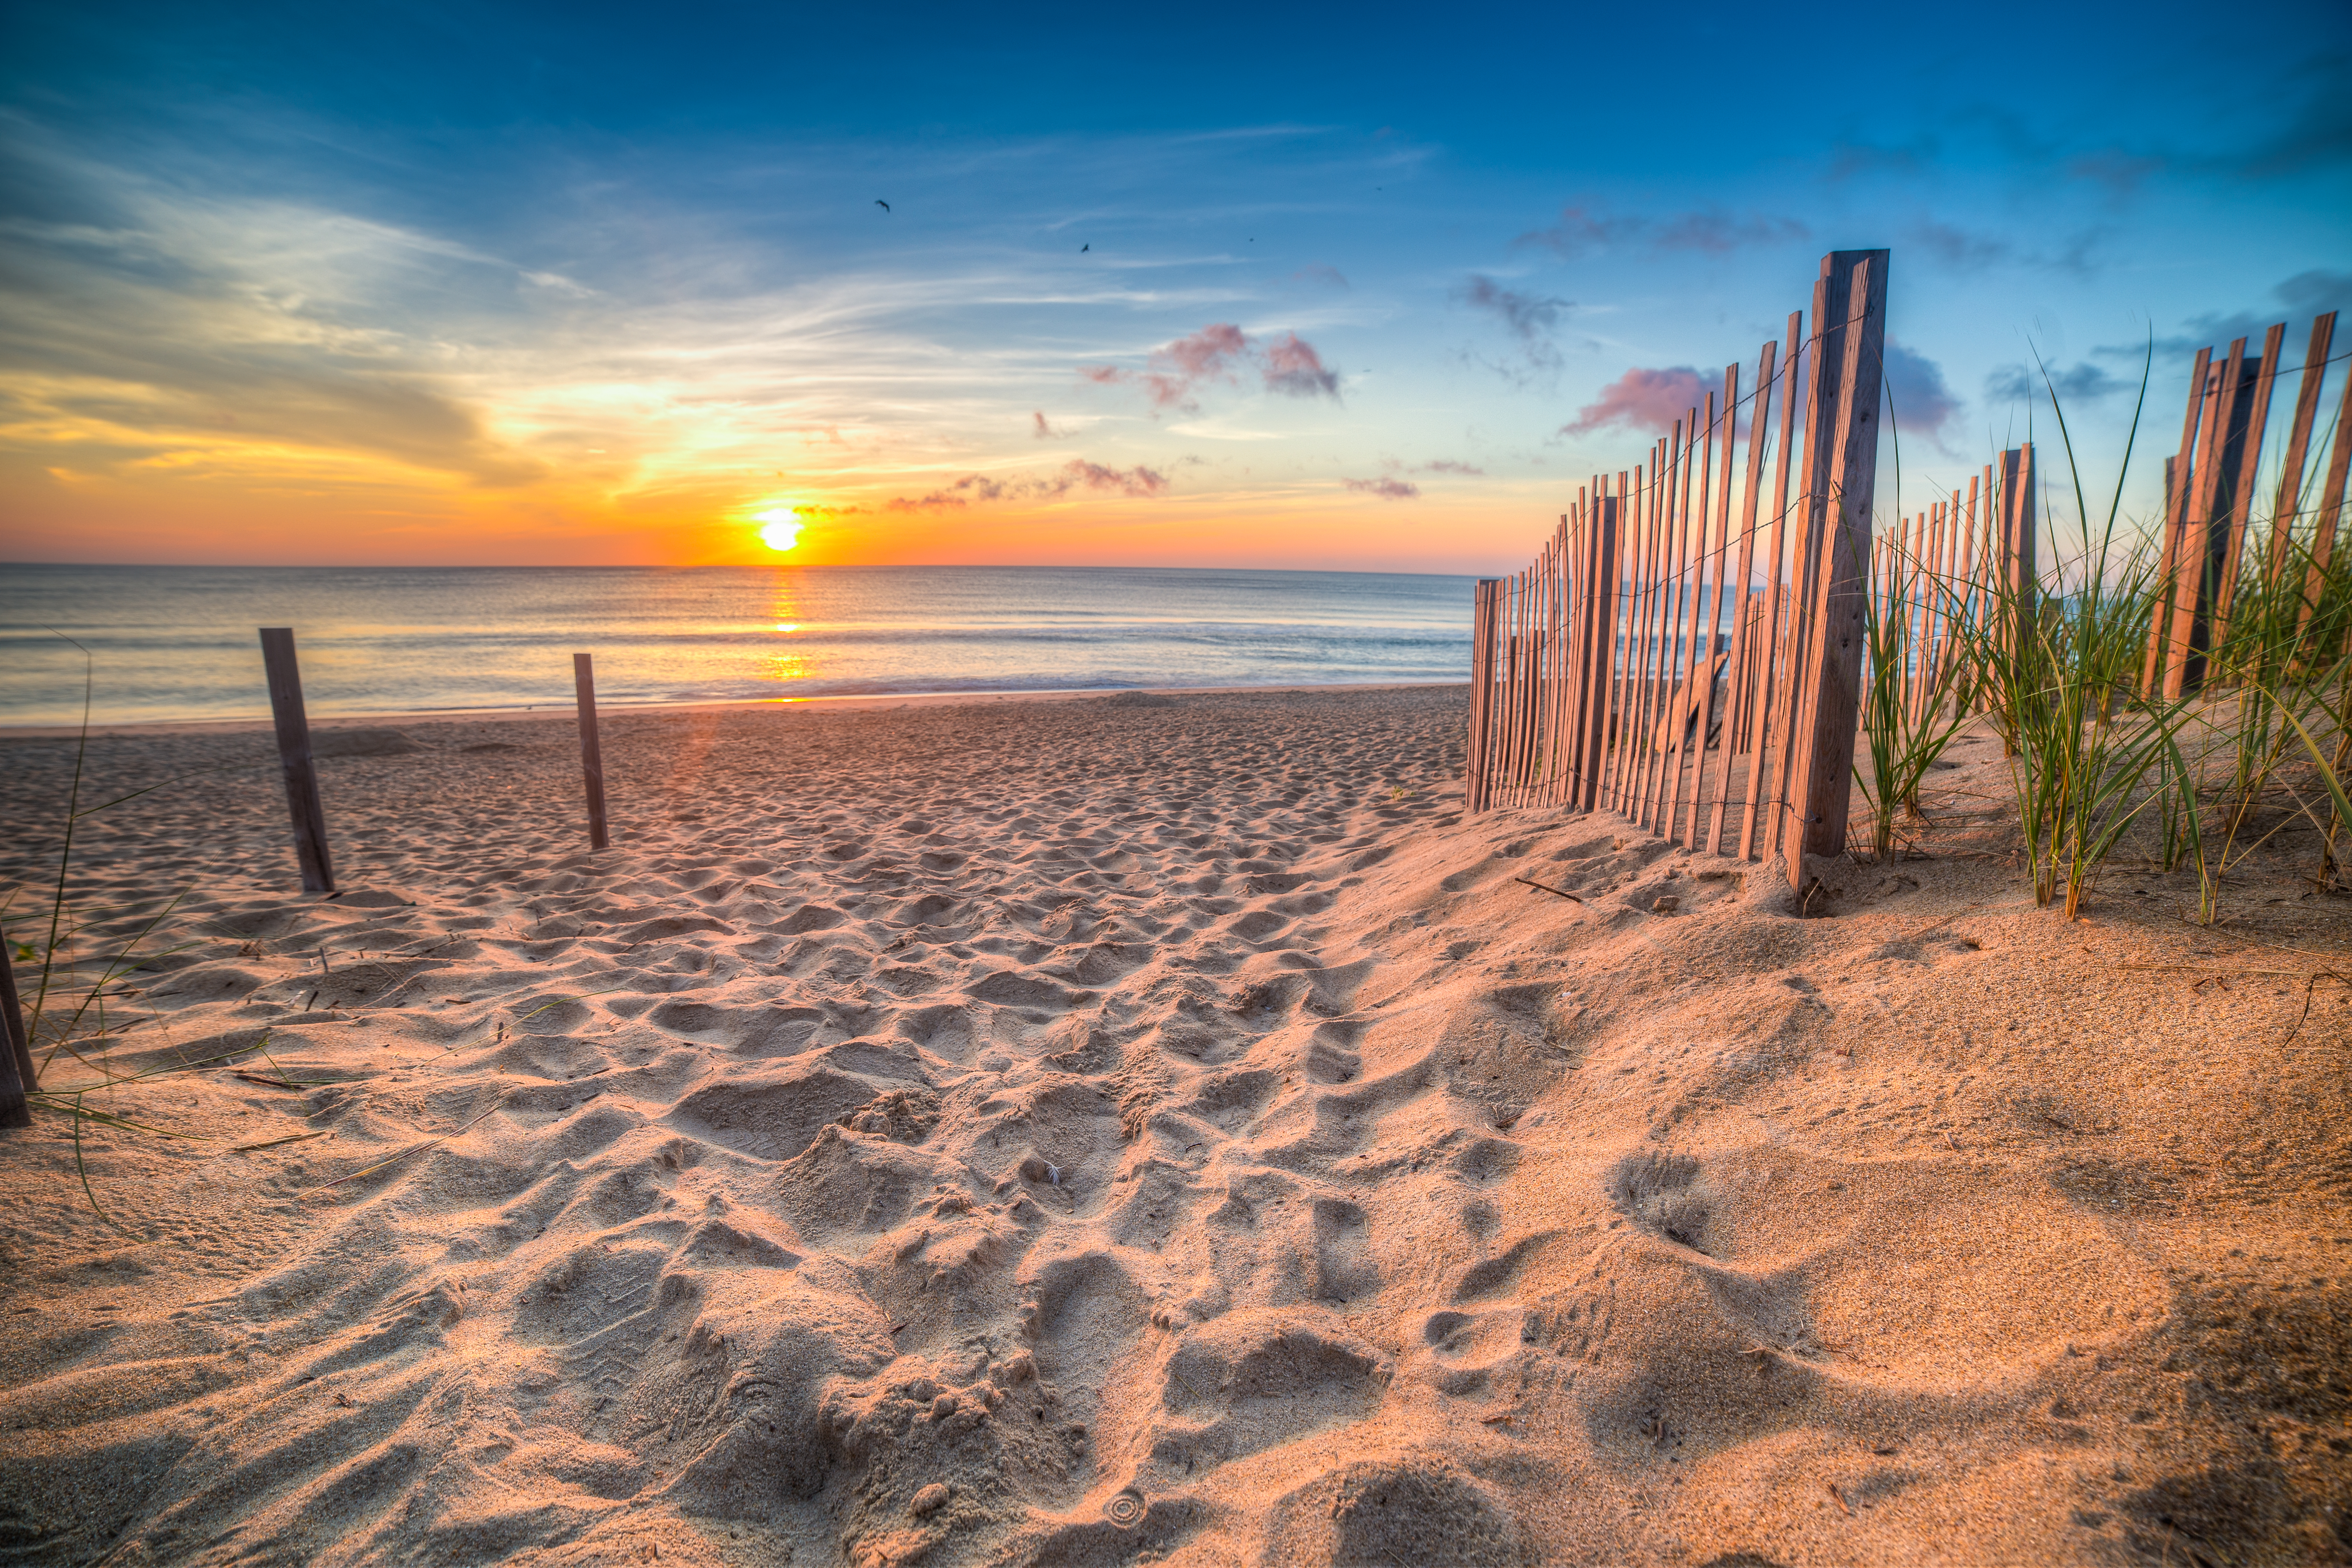 Sandy beach and Atlantic Ocean at sunrise, Outer Banks, North Carolina, USA